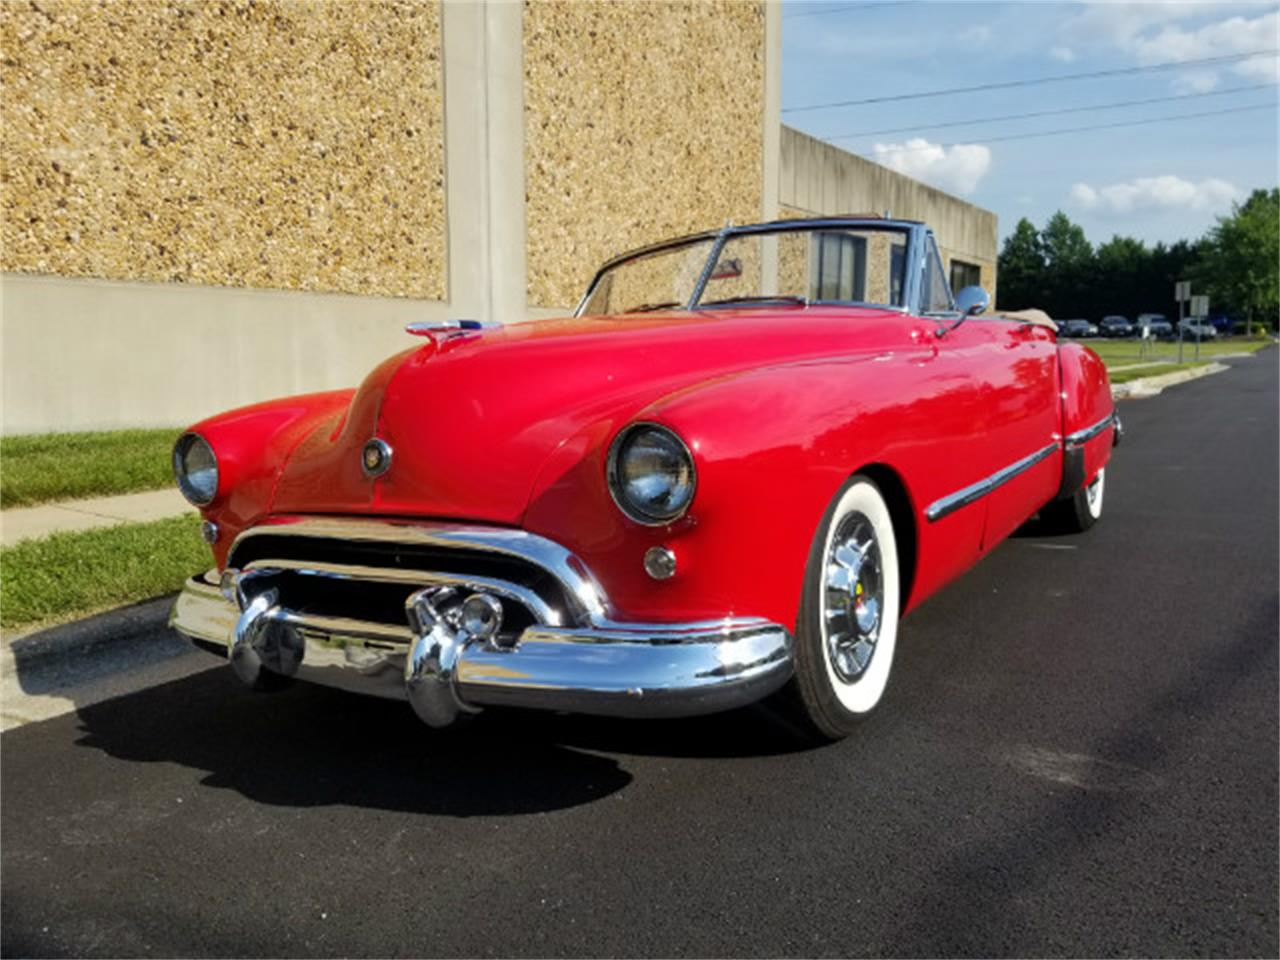 Large Picture of '48 Oldsmobile Custom Cruiser located in Linthicum Maryland Offered by Universal Auto Sales - LE0W